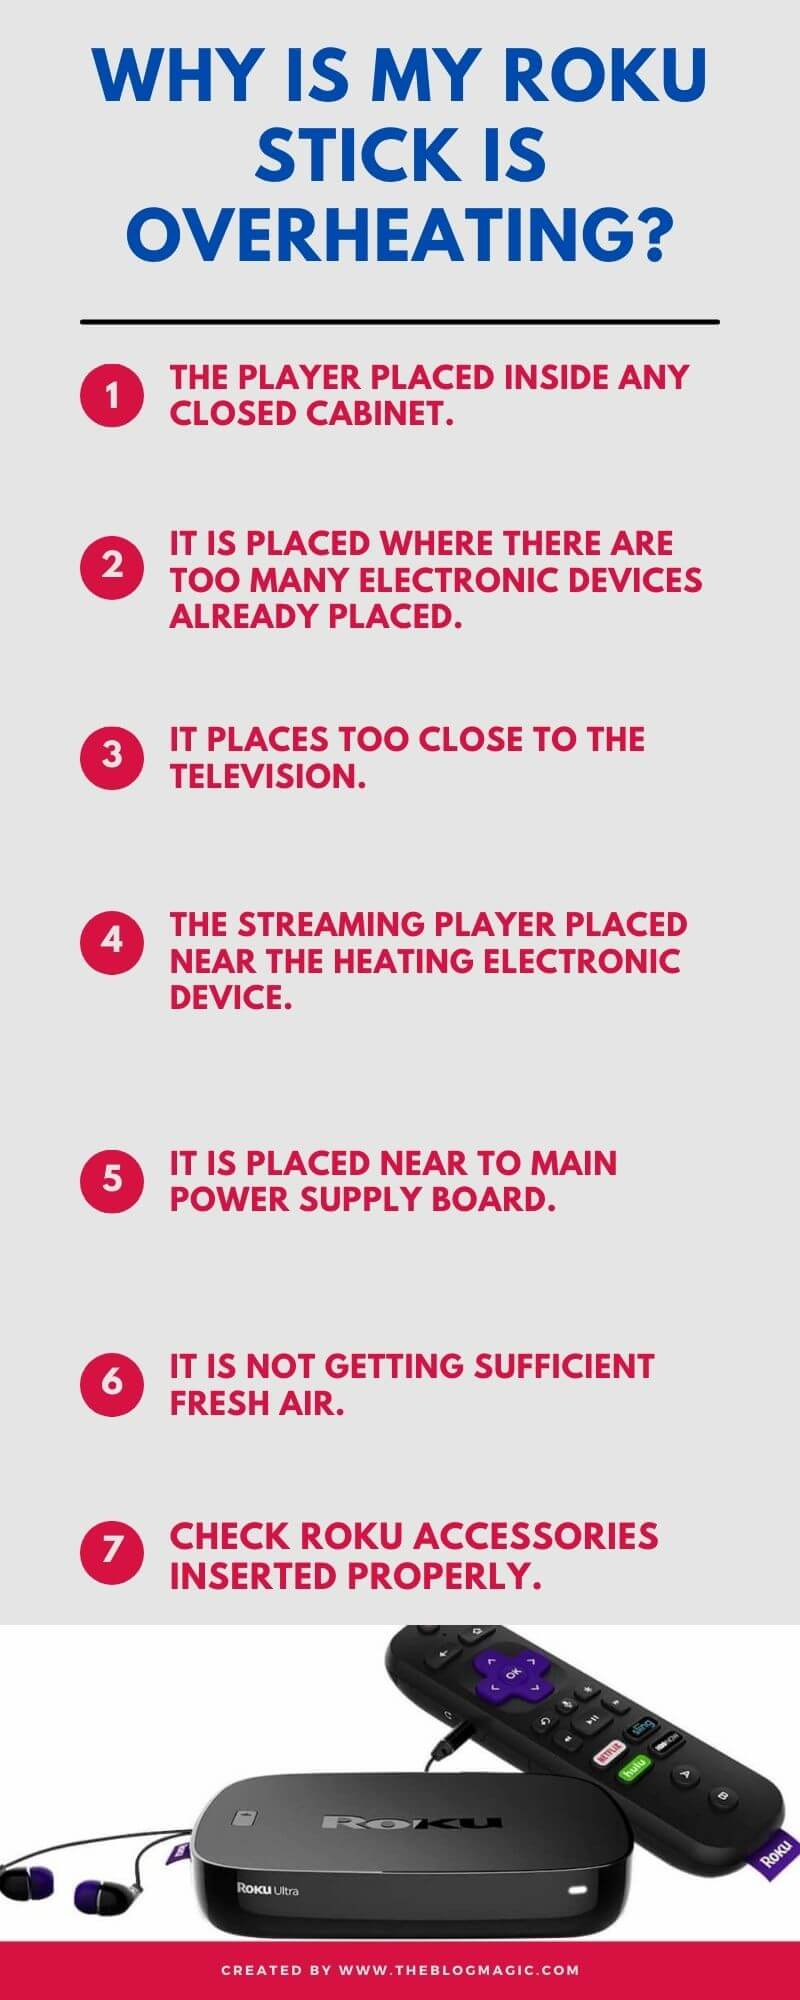 Why Is My Roku Stick Is Overheating infographic?